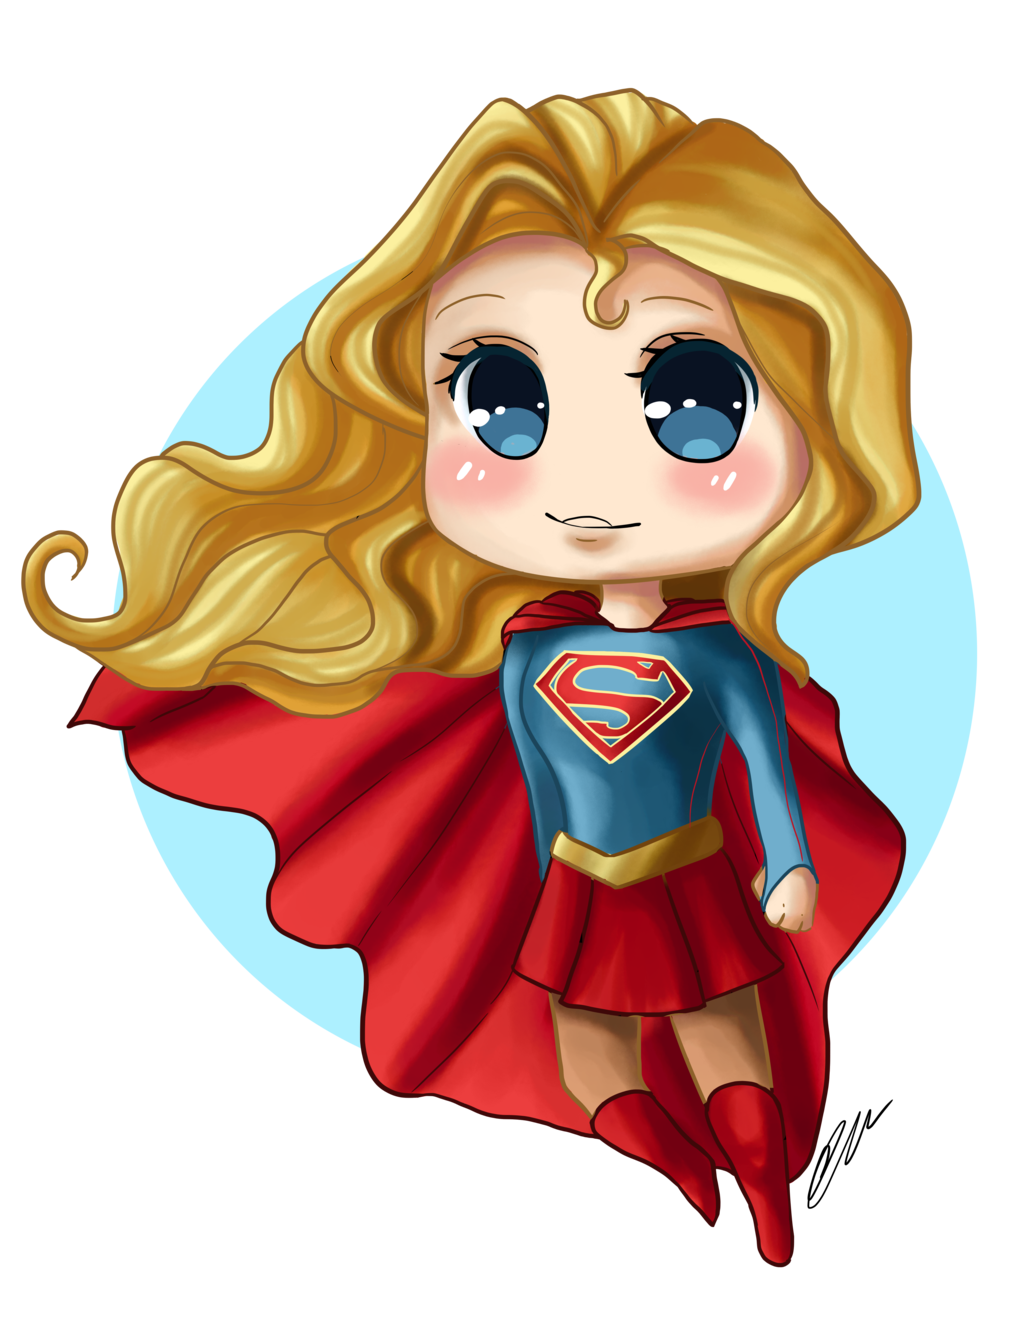 Super Girl clipart chibi Artbox99 on by Supergirl Supergirl